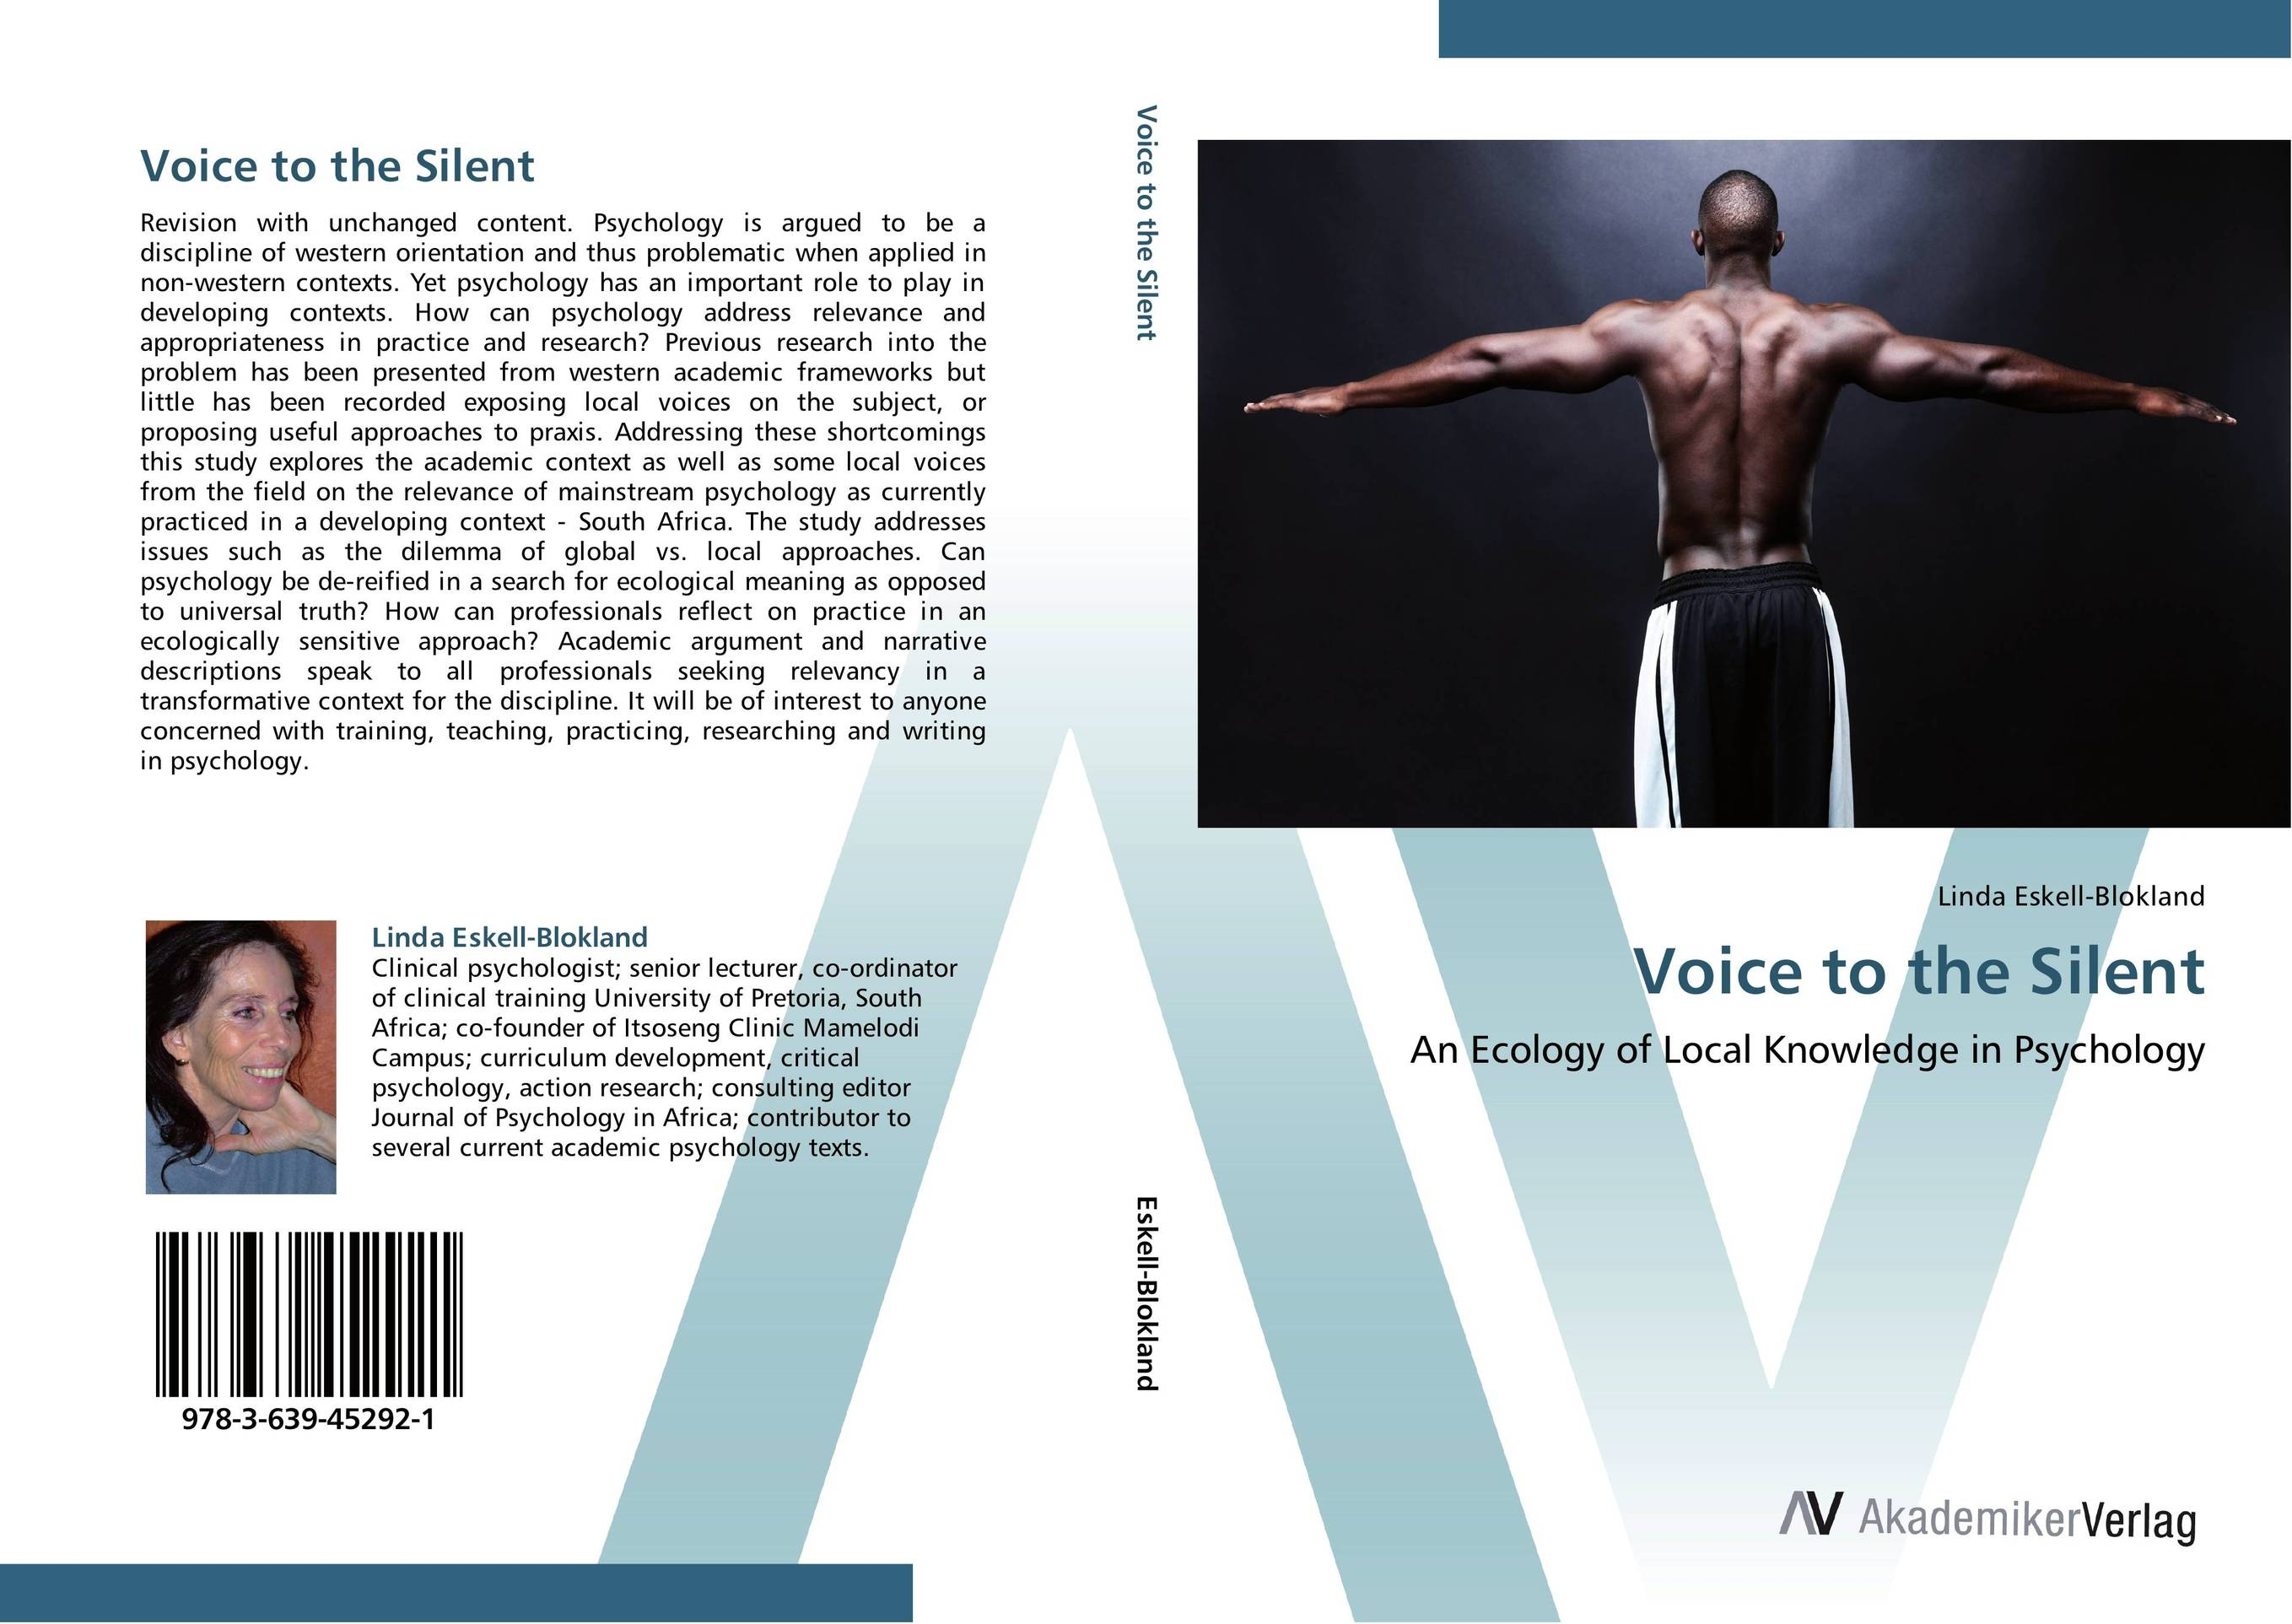 Voice to the Silent